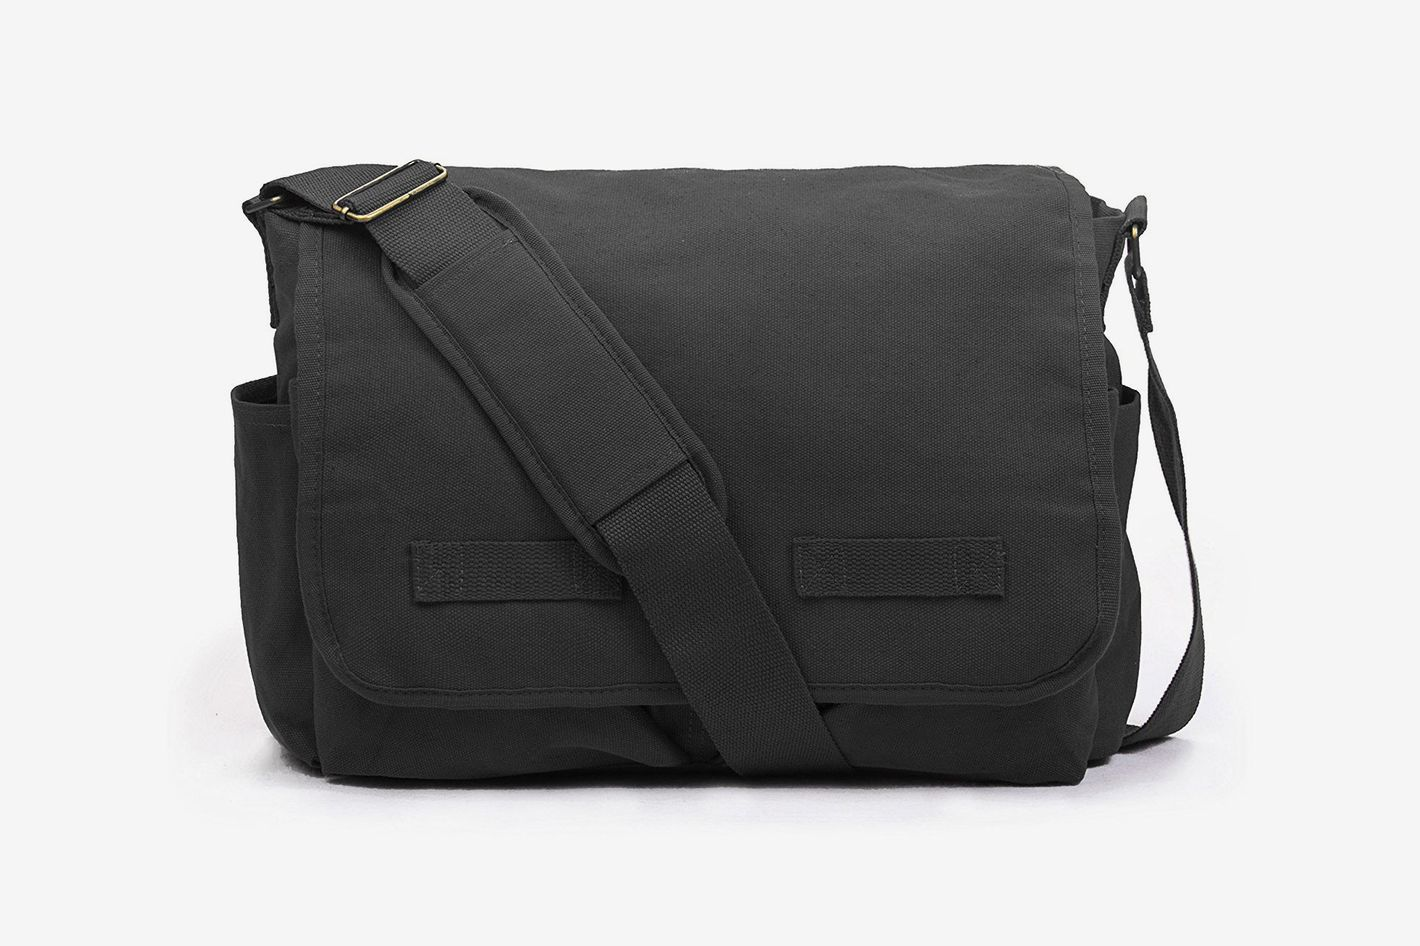 3fb7cba7b9 11 Best Messenger Bags for Men 2018